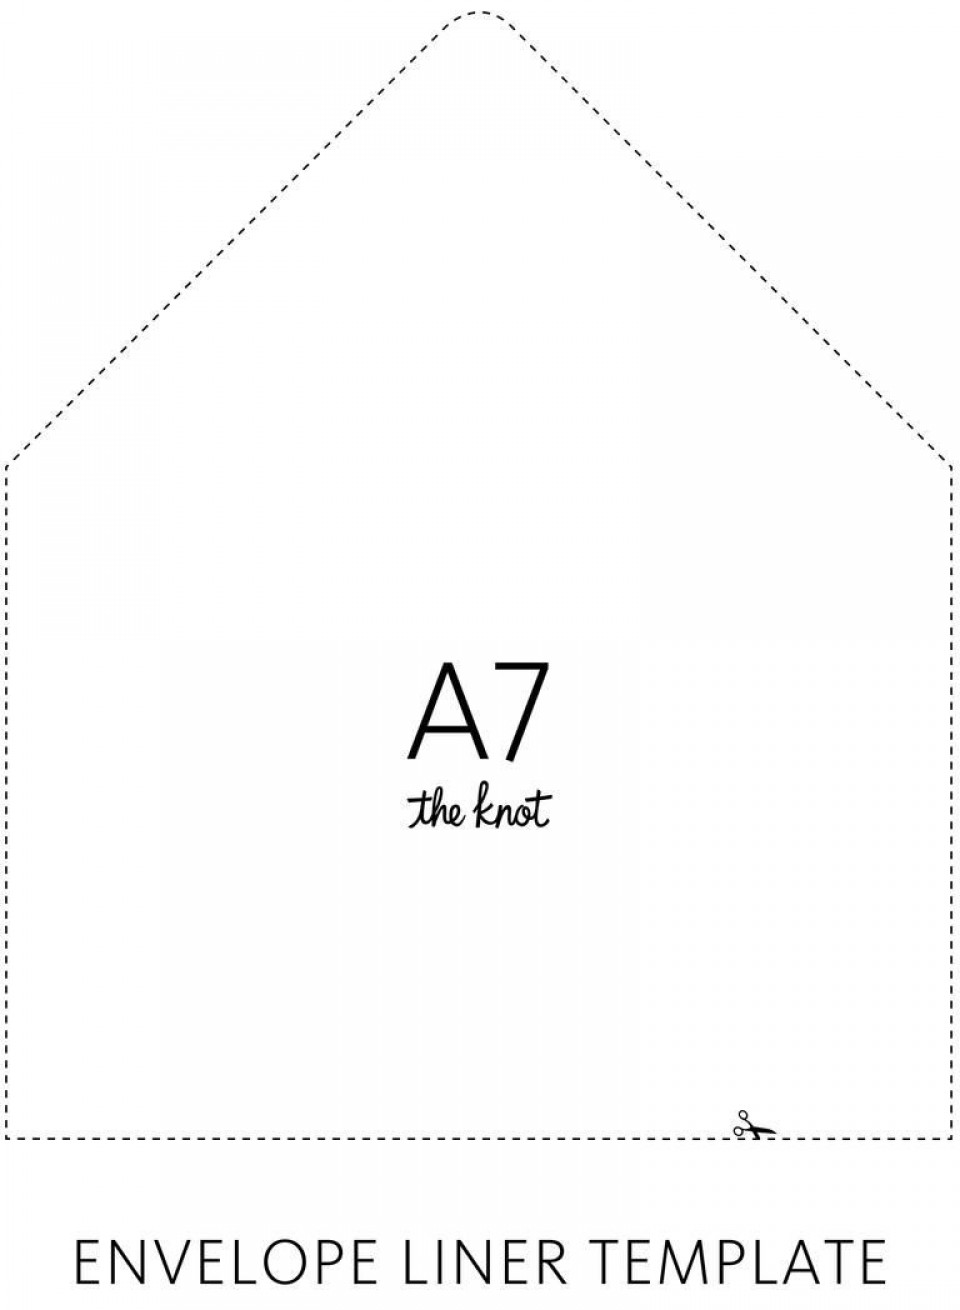 003 Sensational A7 Envelope Liner Template Free High Def 960